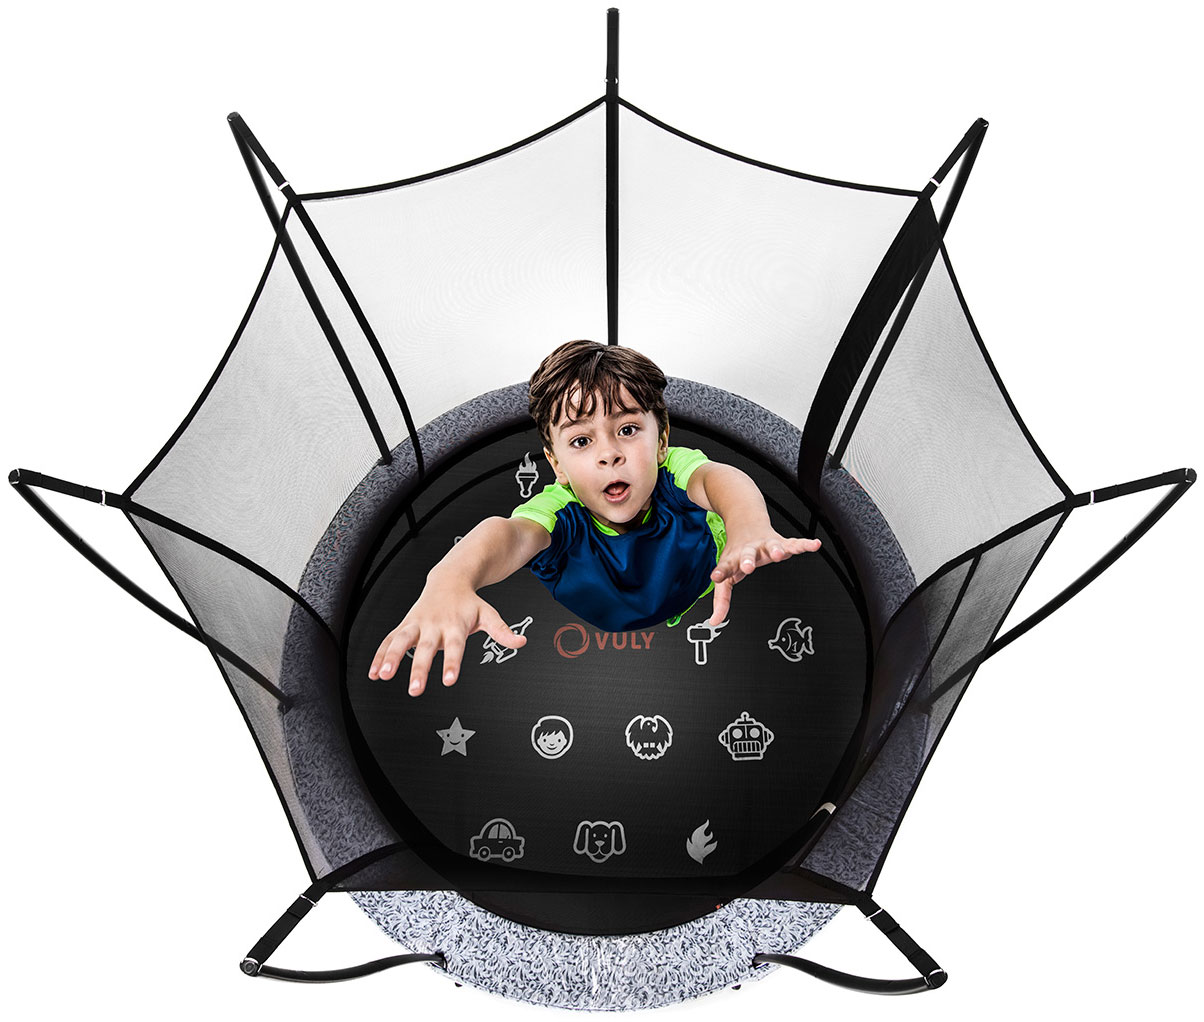 Take you trampoline home with you instantly.